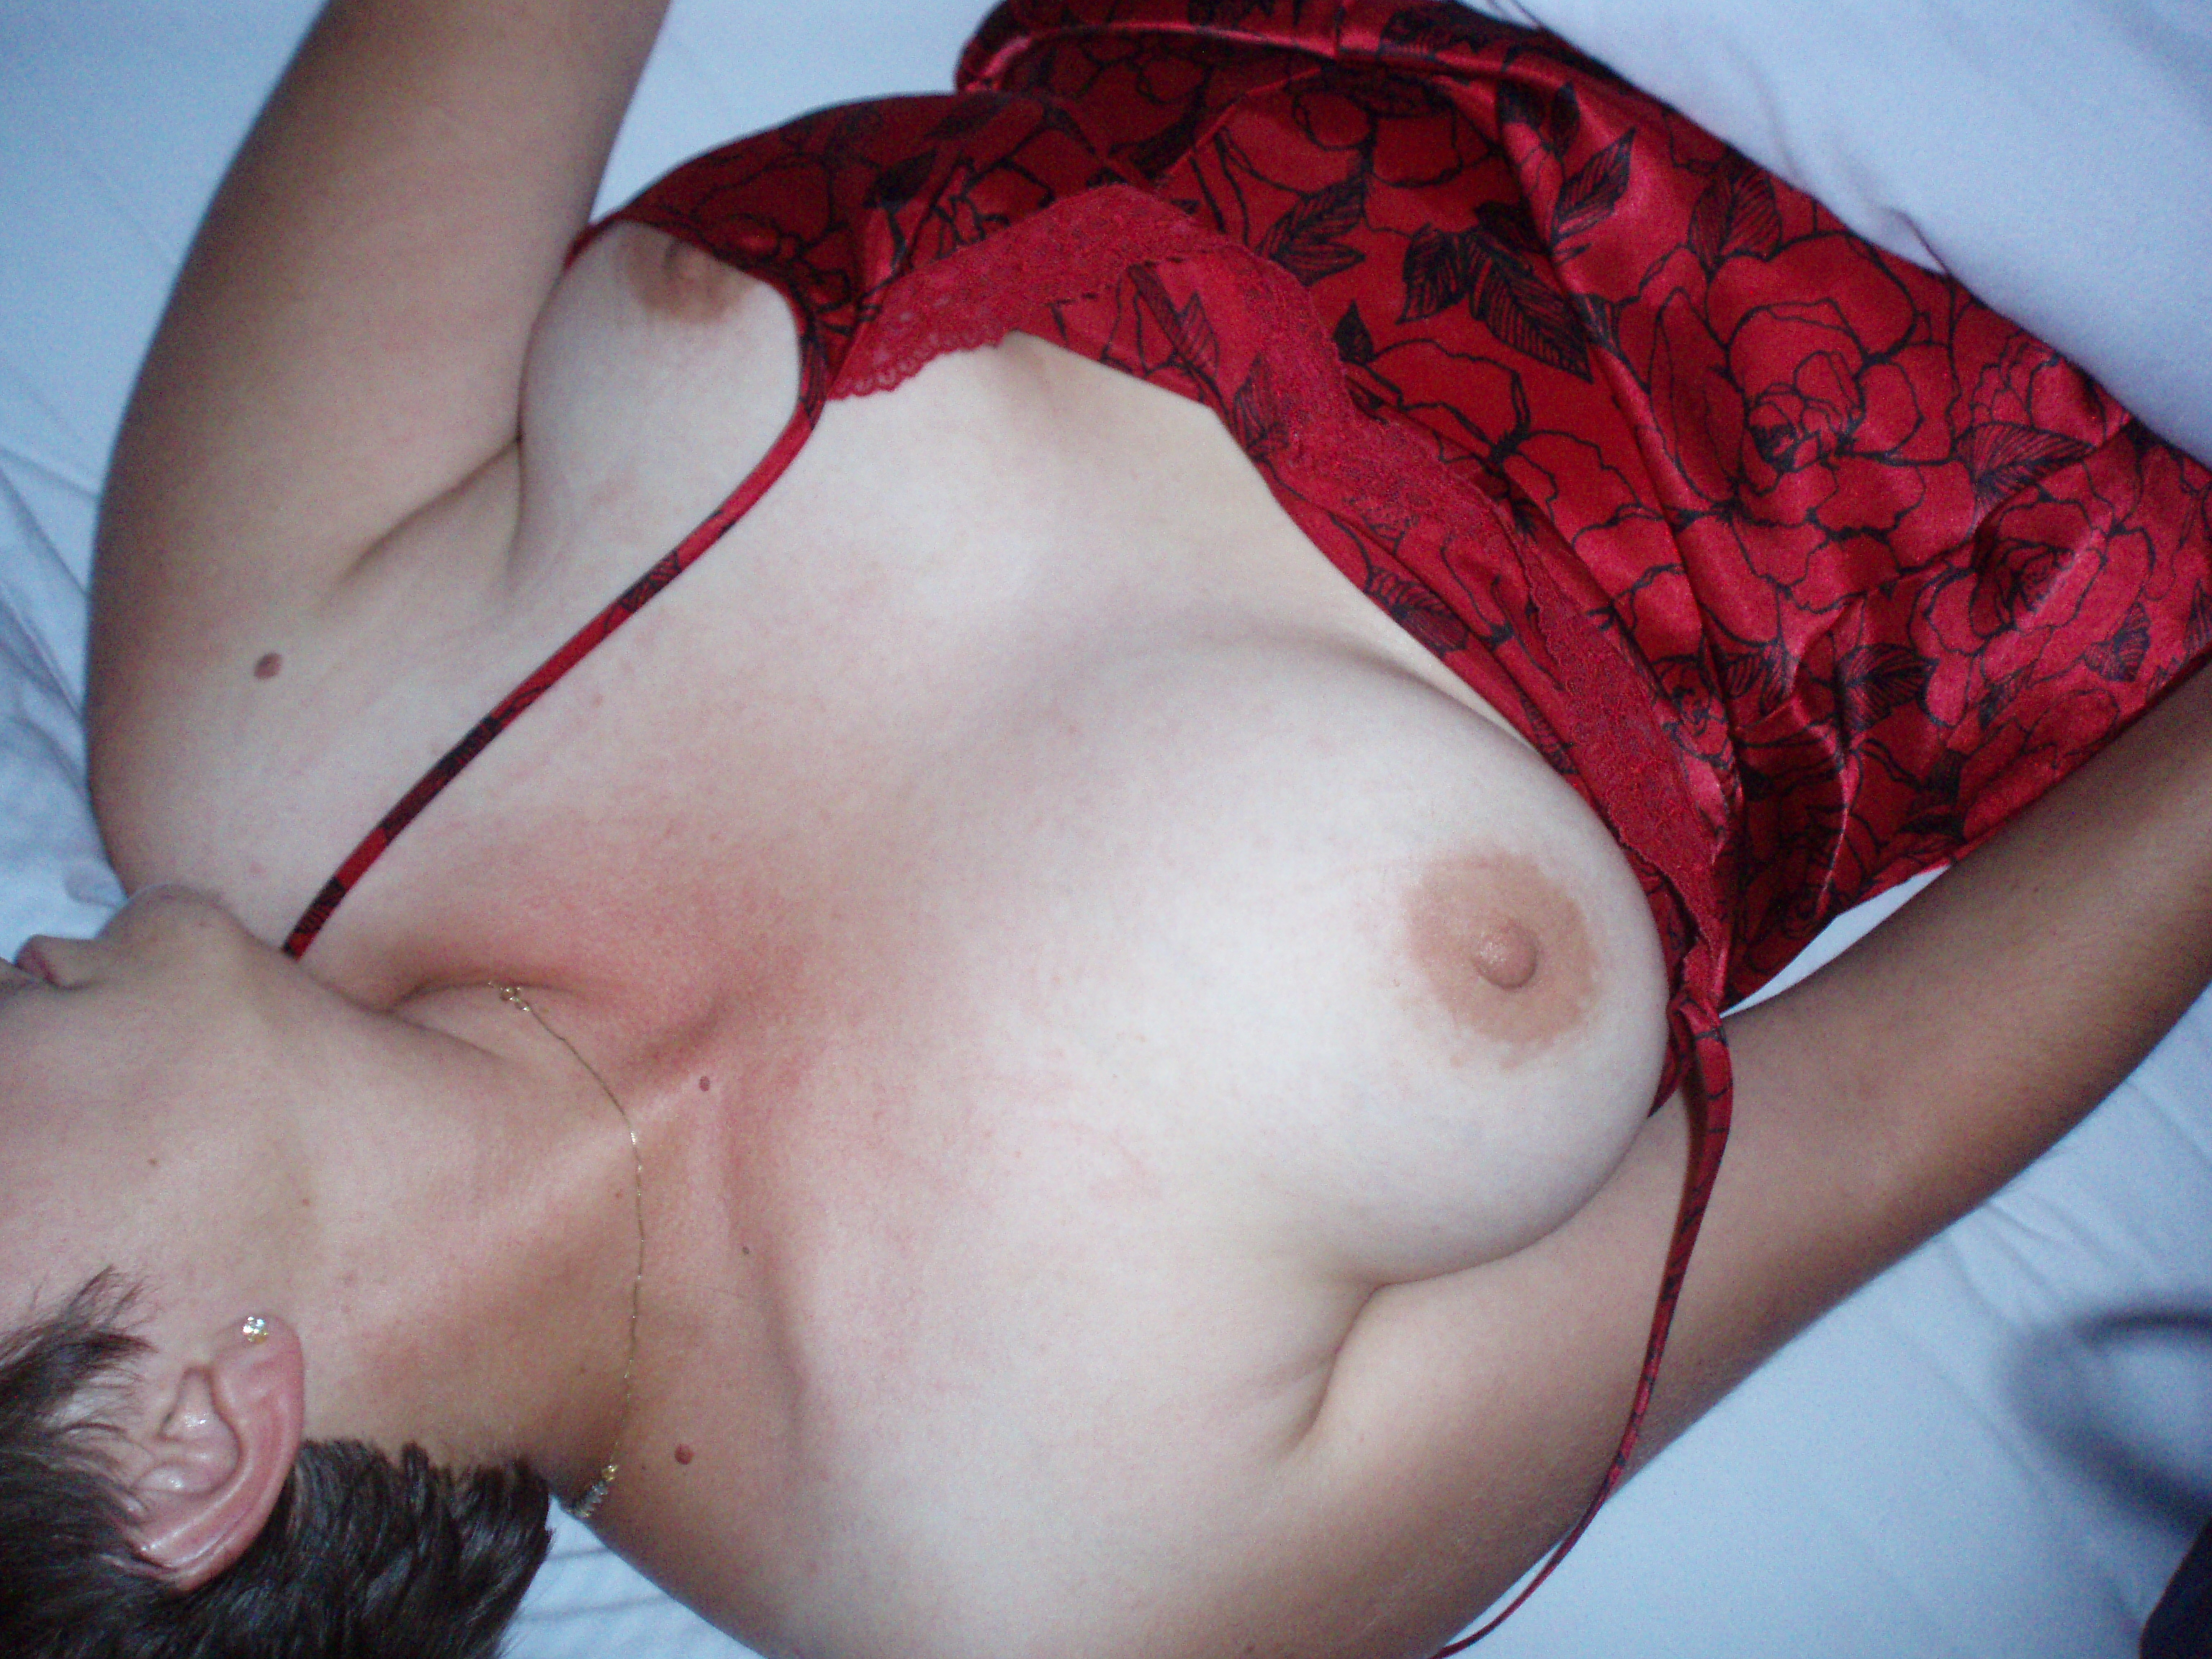 Why does my wife show her tits